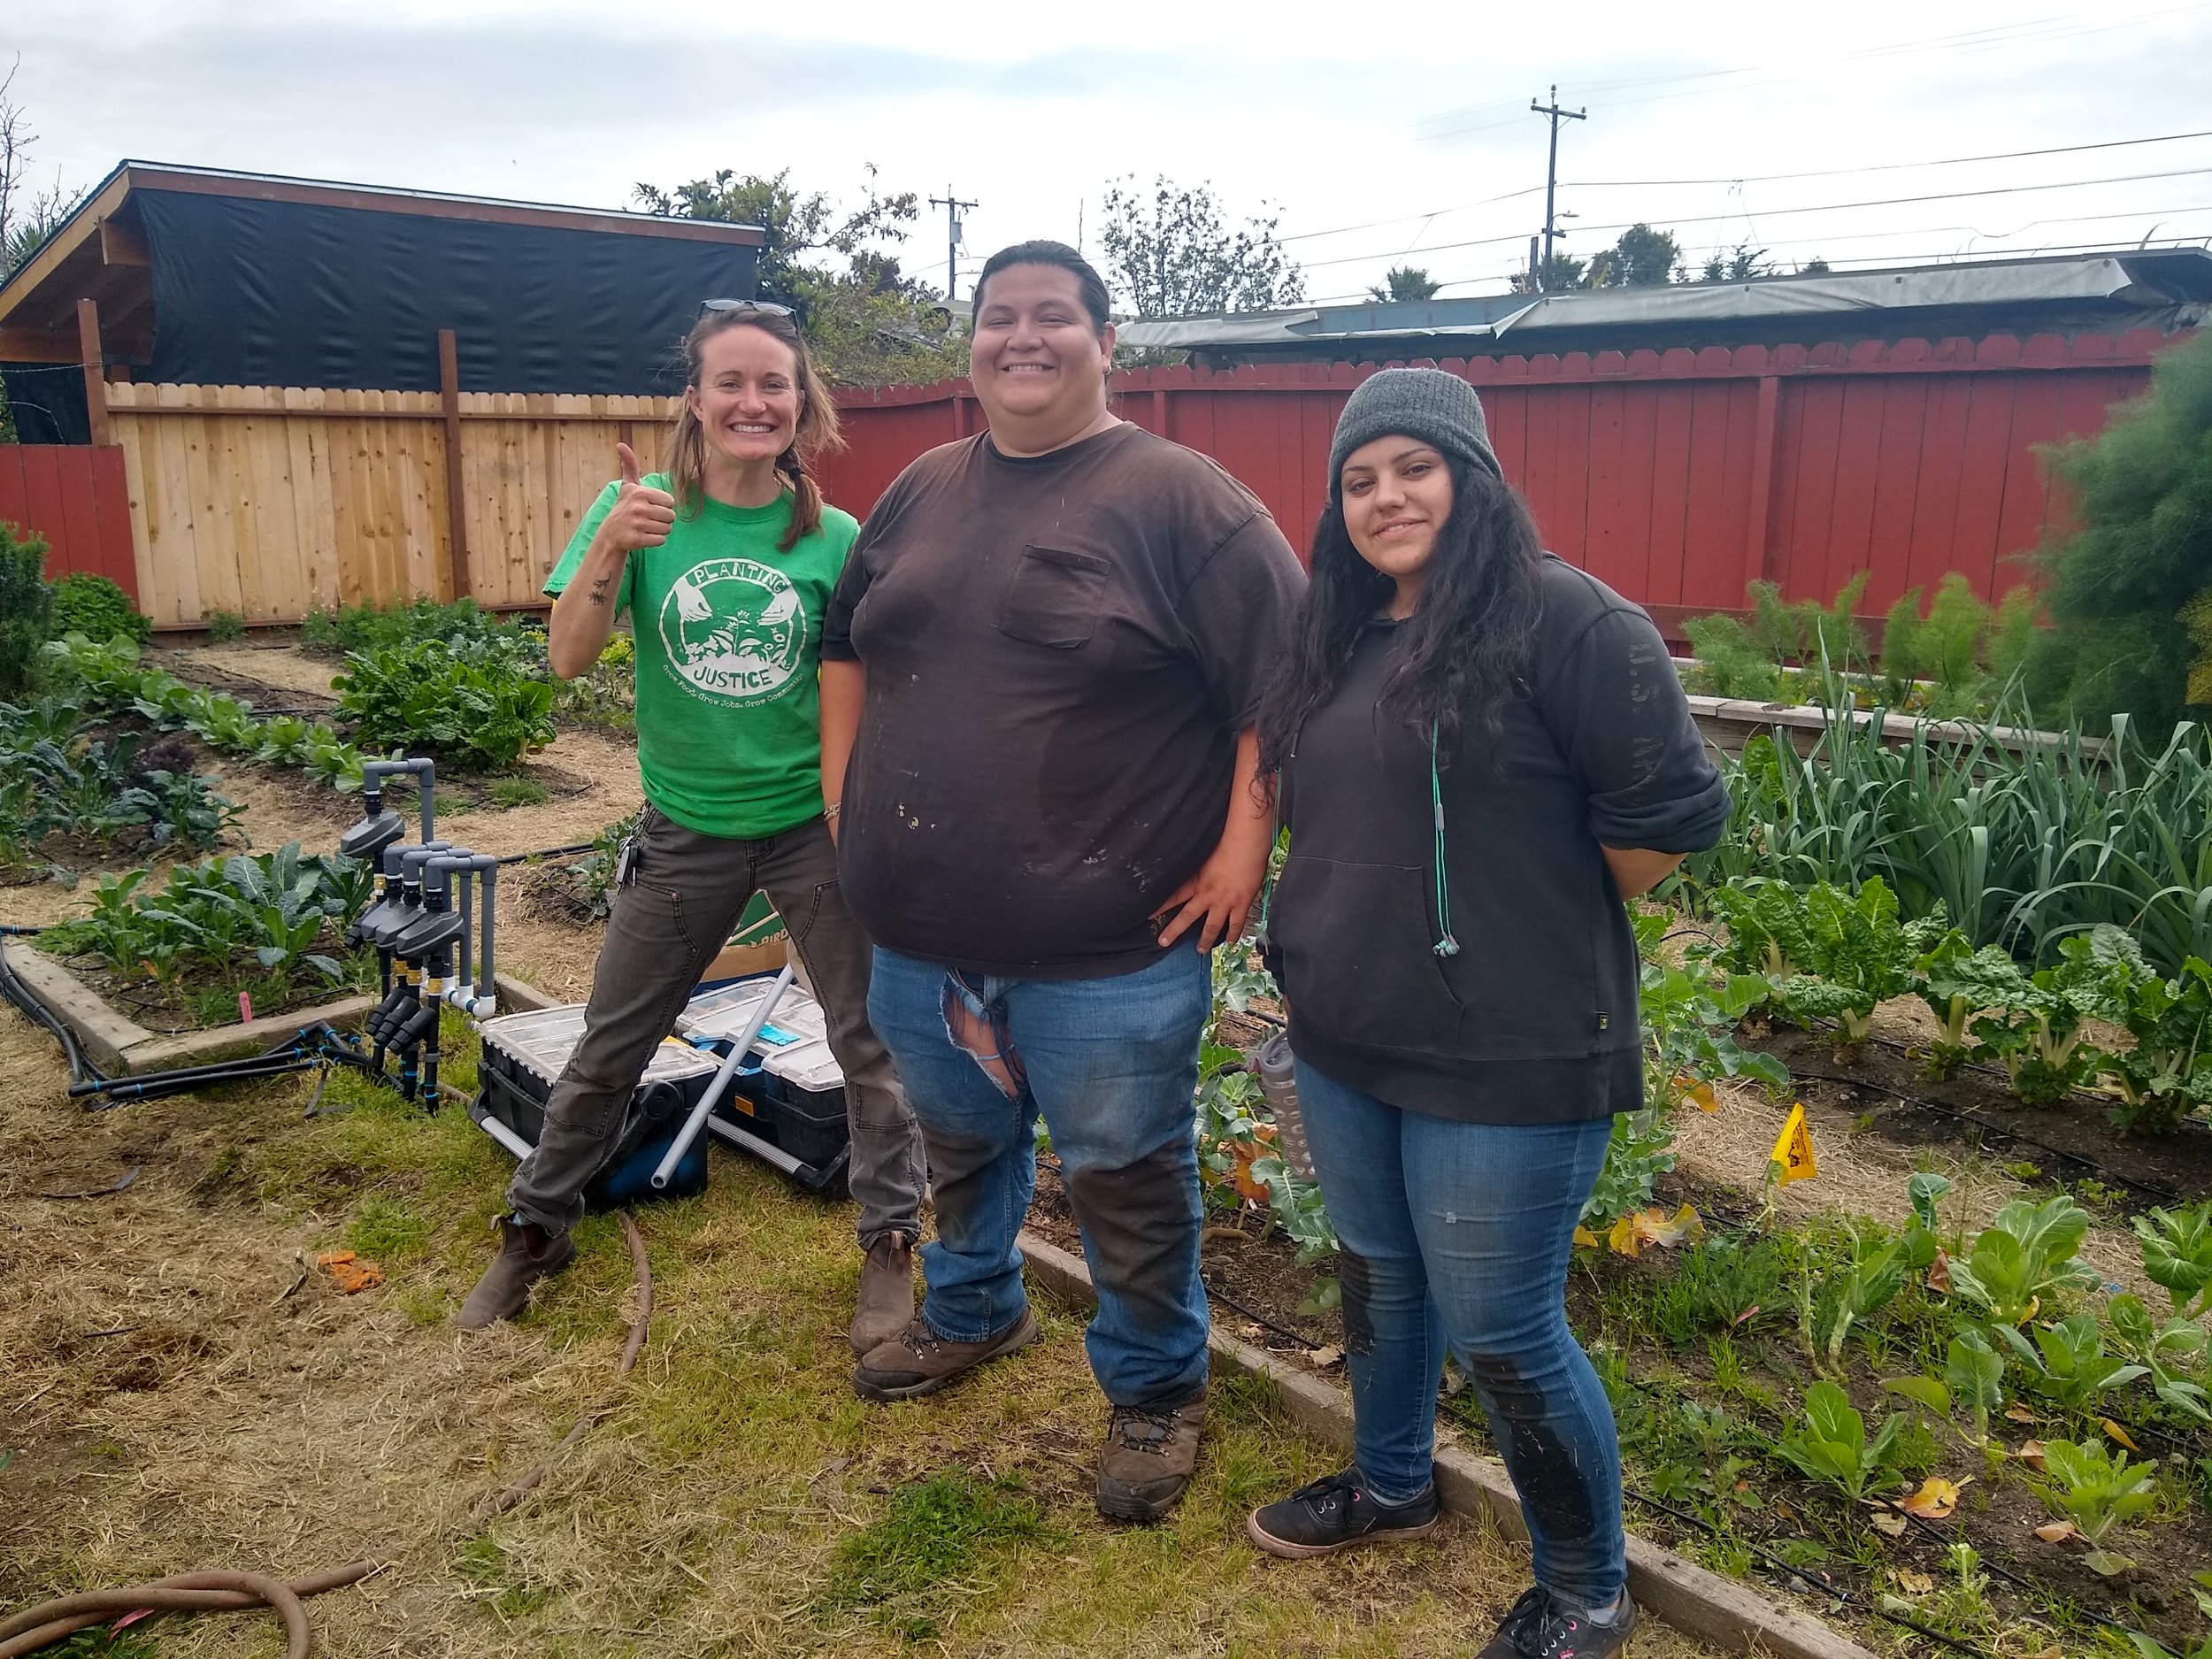 Community Justice Garden Build @ Bay Area Rescue Mission IMG 20190408 152016698 HDR